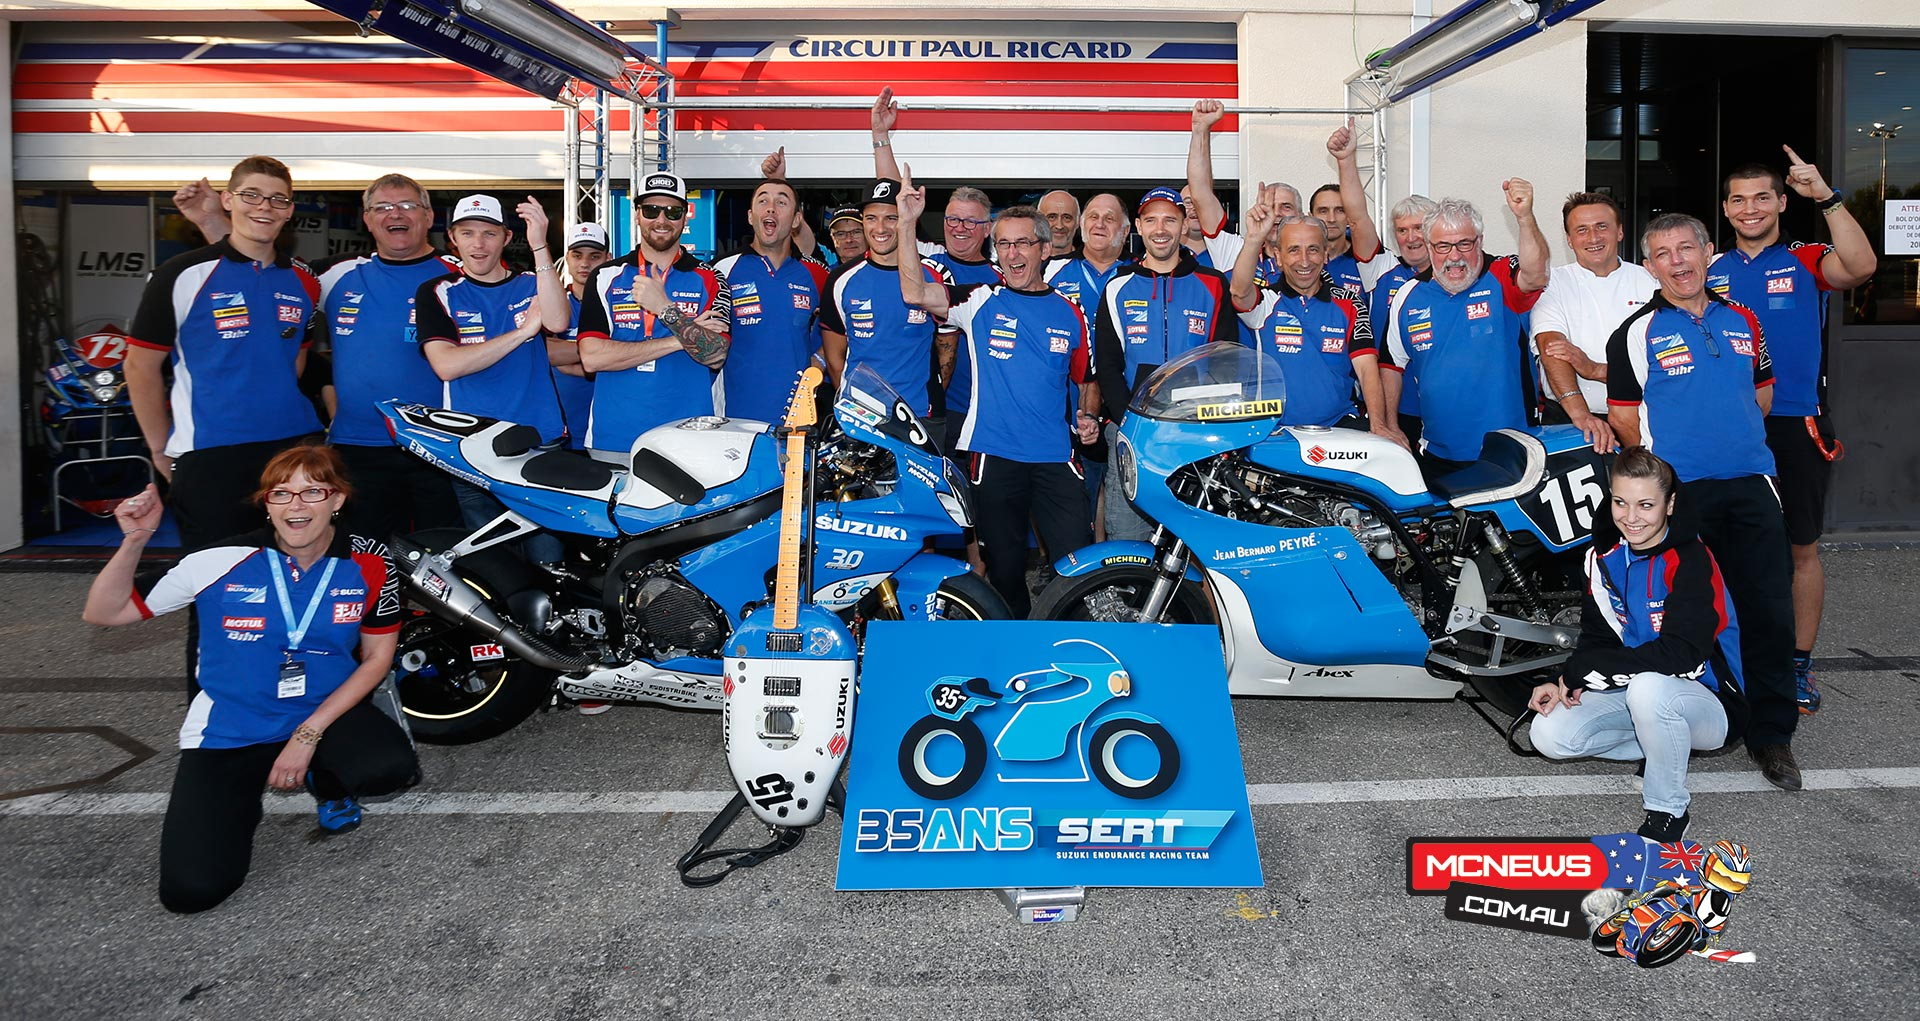 2015 Bol d'Or - Suzuki Endurance Racing Team (SERT) - World Endurance Champions 2015